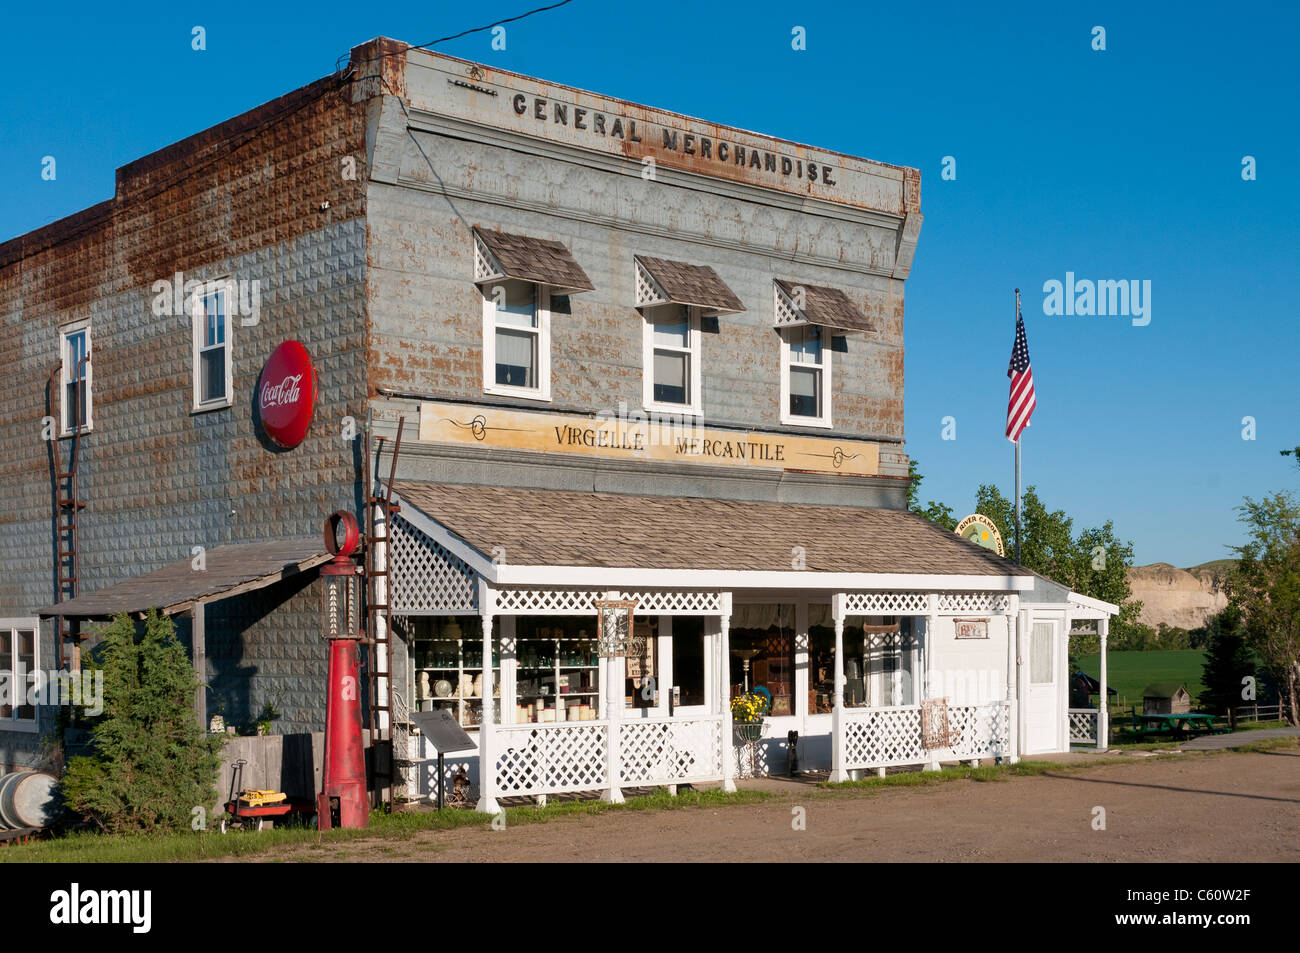 Virgelle Mercantile antiques store and inn; Virgelle, Montana. - Stock Image